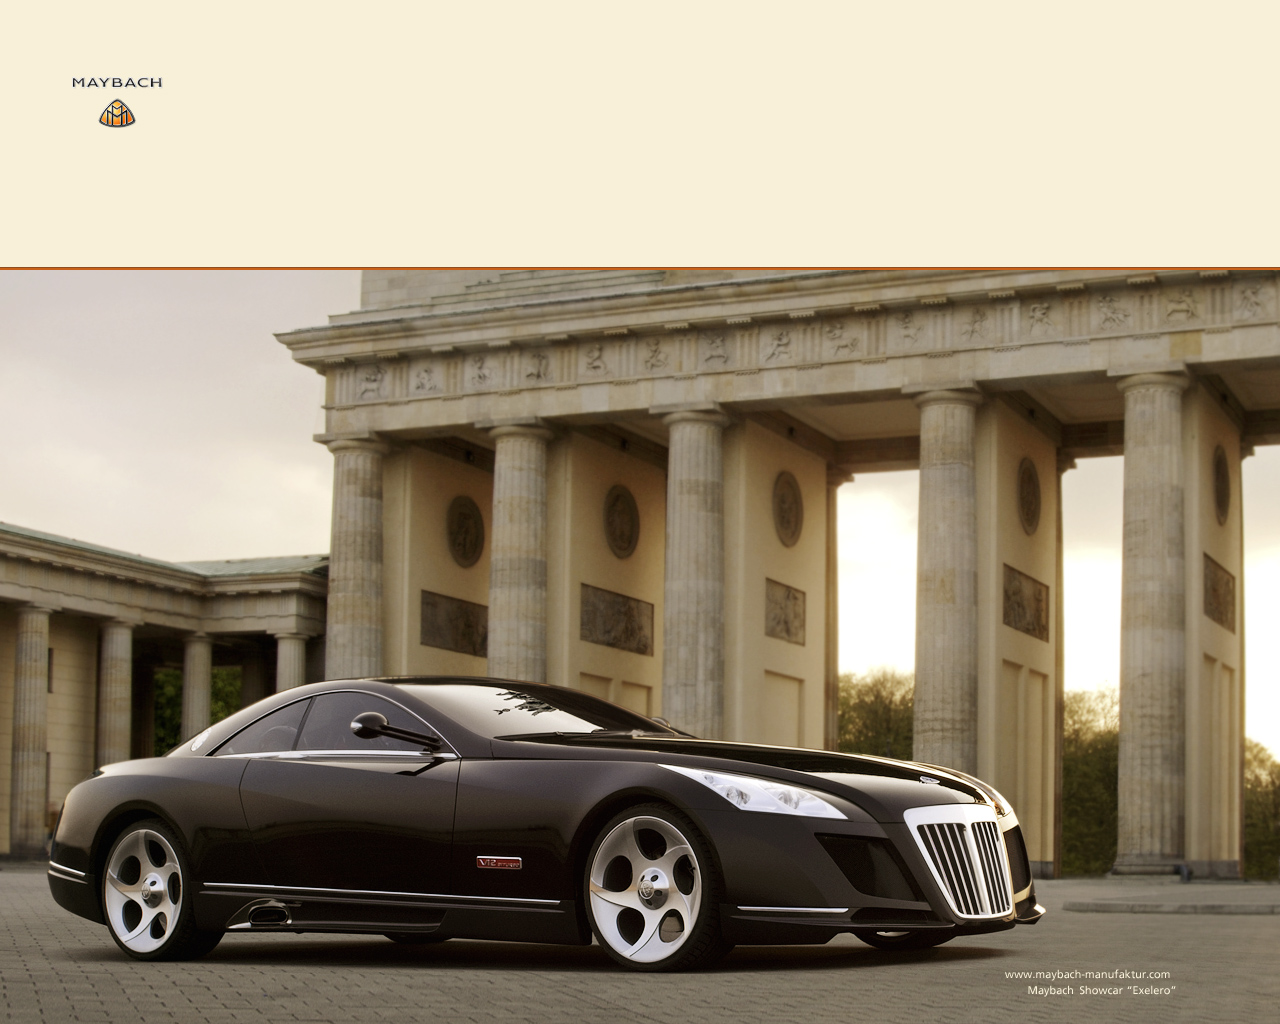 Maybach Wallpapers Group 79 1280x1024